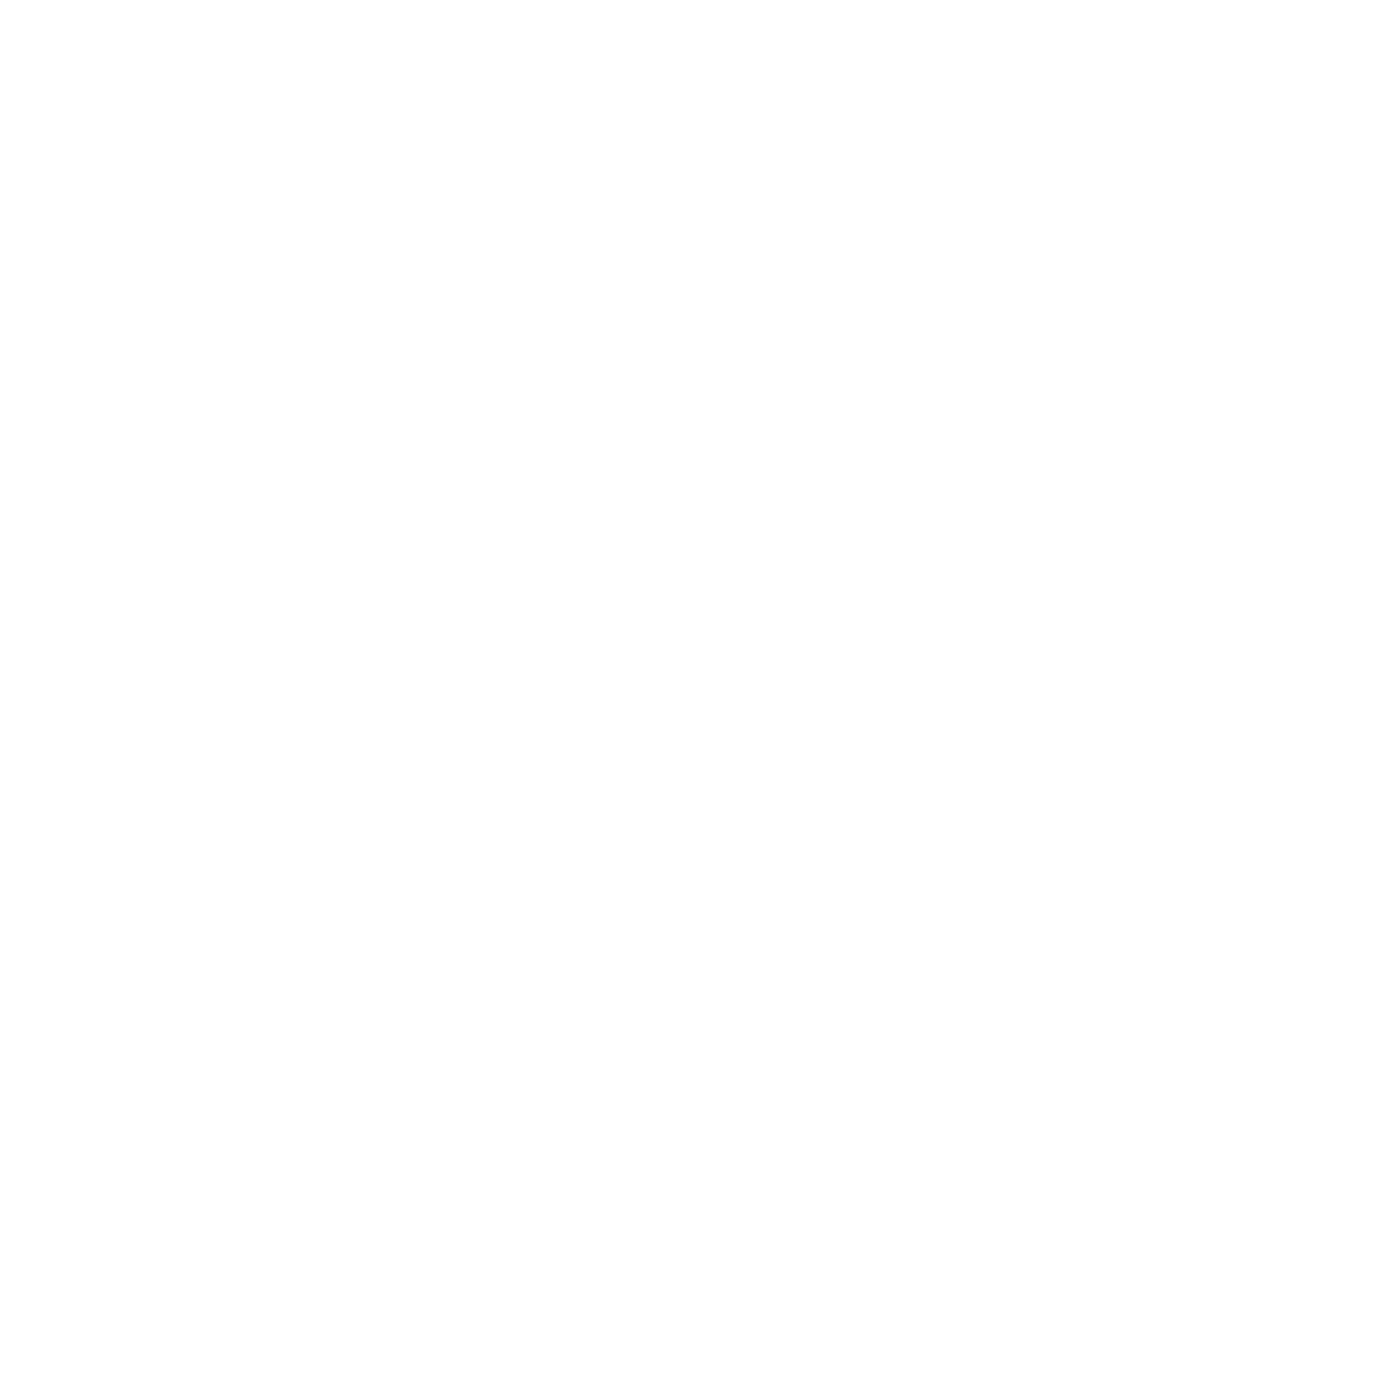 Dominica Electricity Services